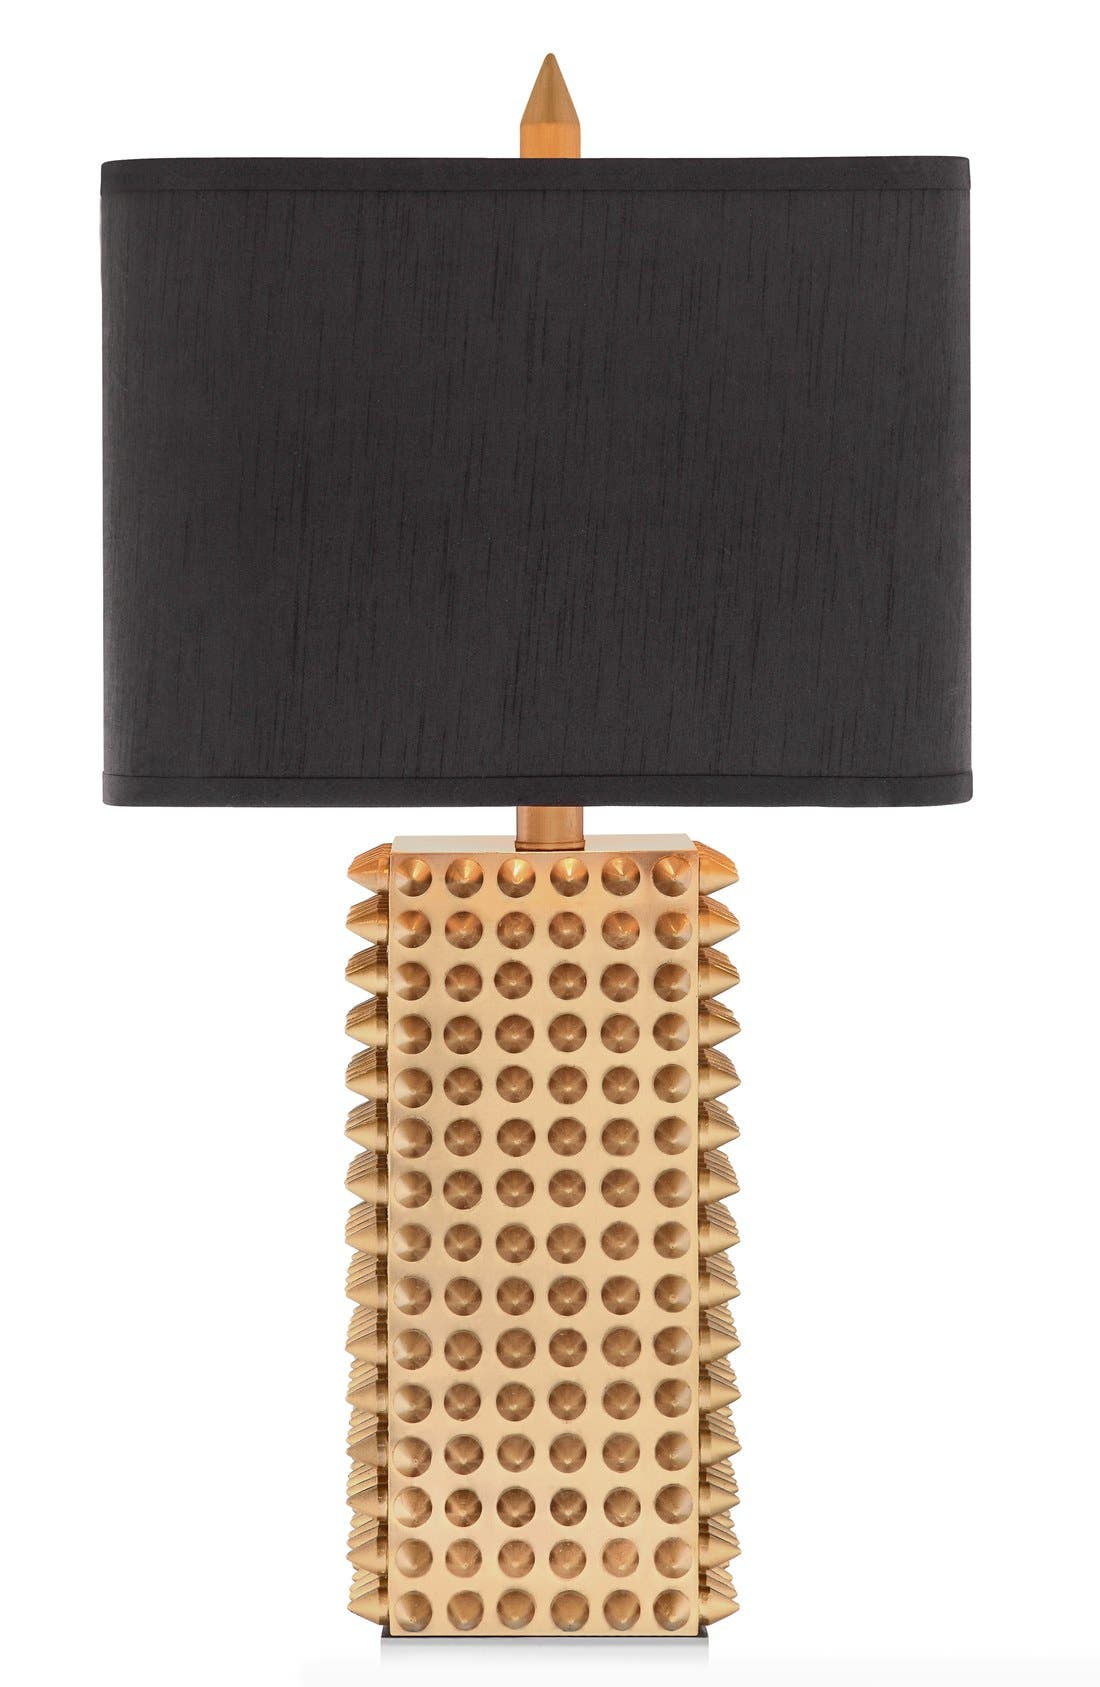 Main Image - JAlexander Lighting Goldtone Spiked Square Table Lamp